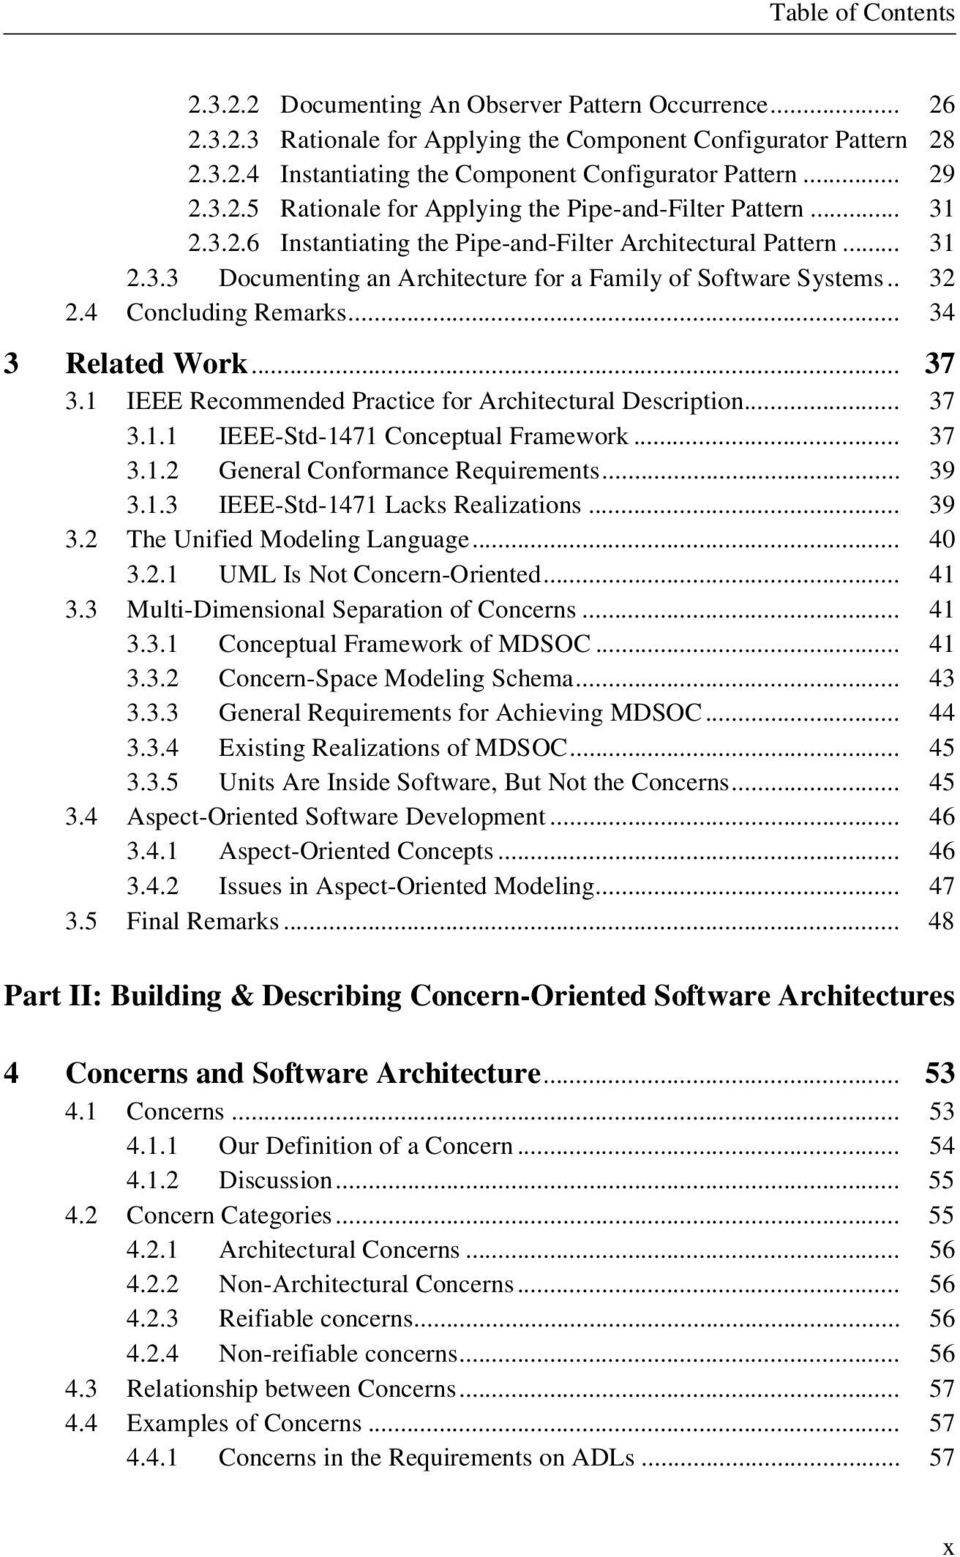 1 IEEE Recommended Practice for Architectural Description... 37 3.1.1 IEEE-Std-1471 Conceptual Framework... 37 3.1.2 General Conformance Requirements... 39 3.1.3 IEEE-Std-1471 Lacks Realizations.